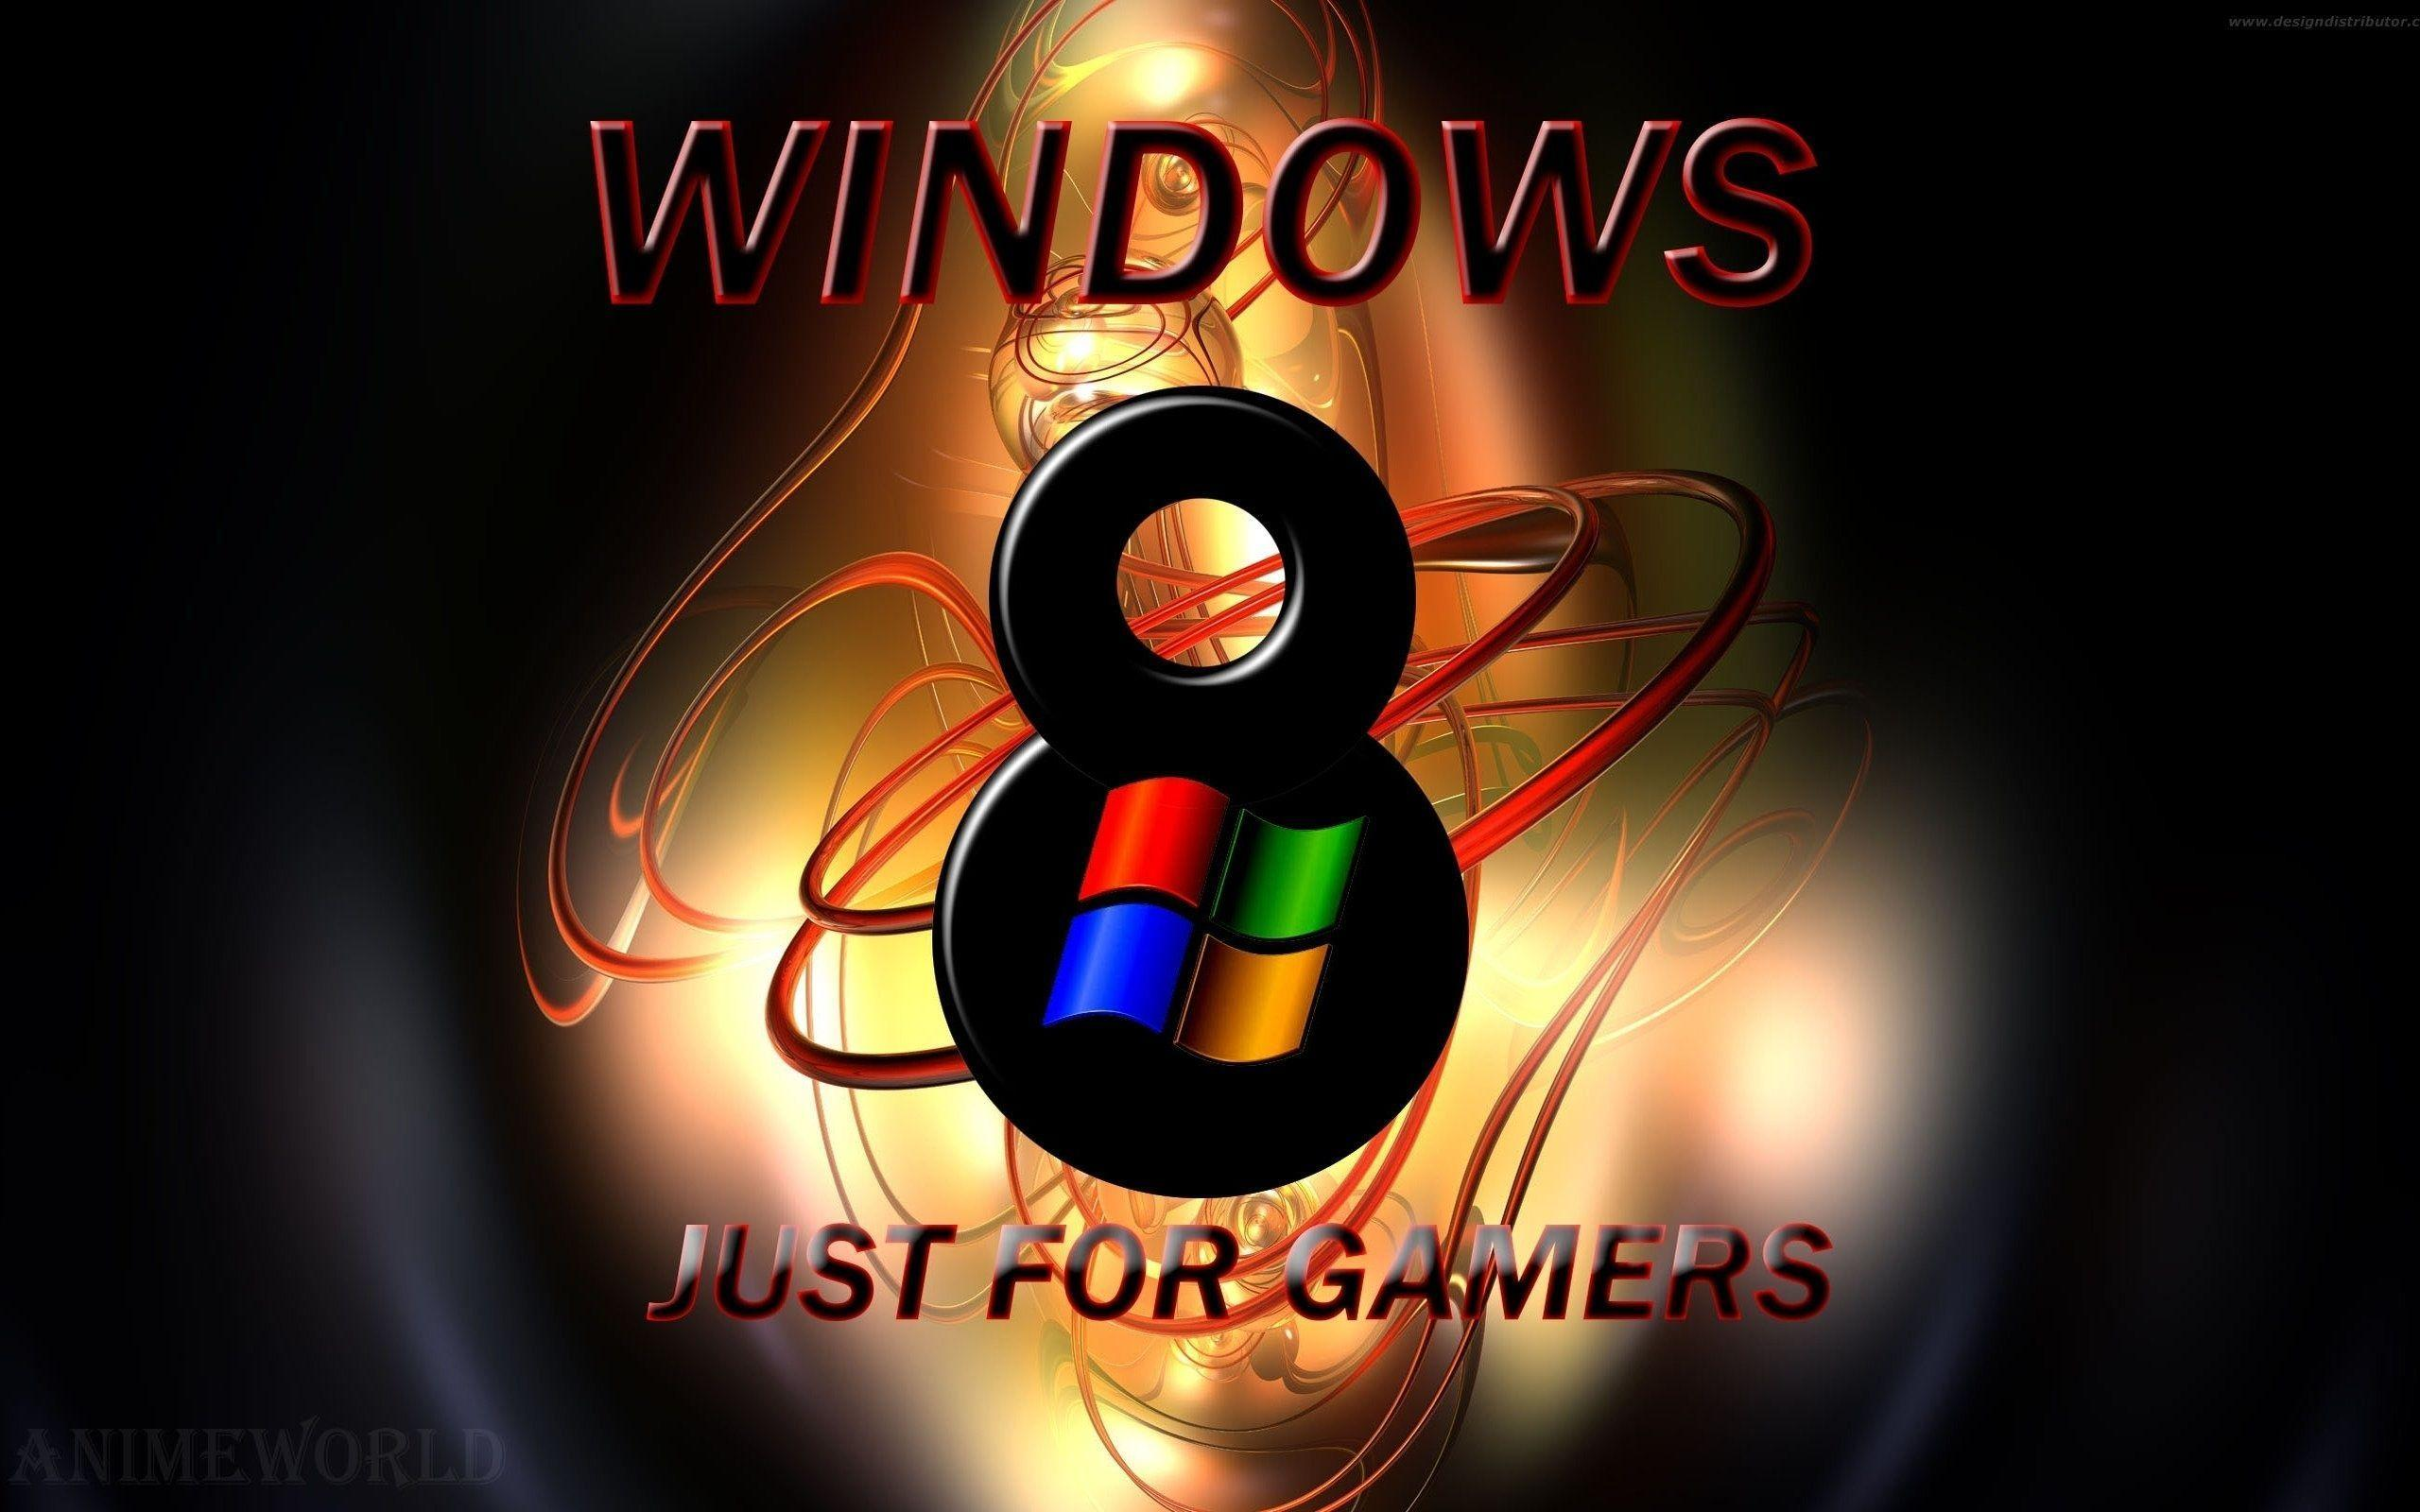 3d wallpapers for windows 8 1 - drive.cheapusedmotorhome